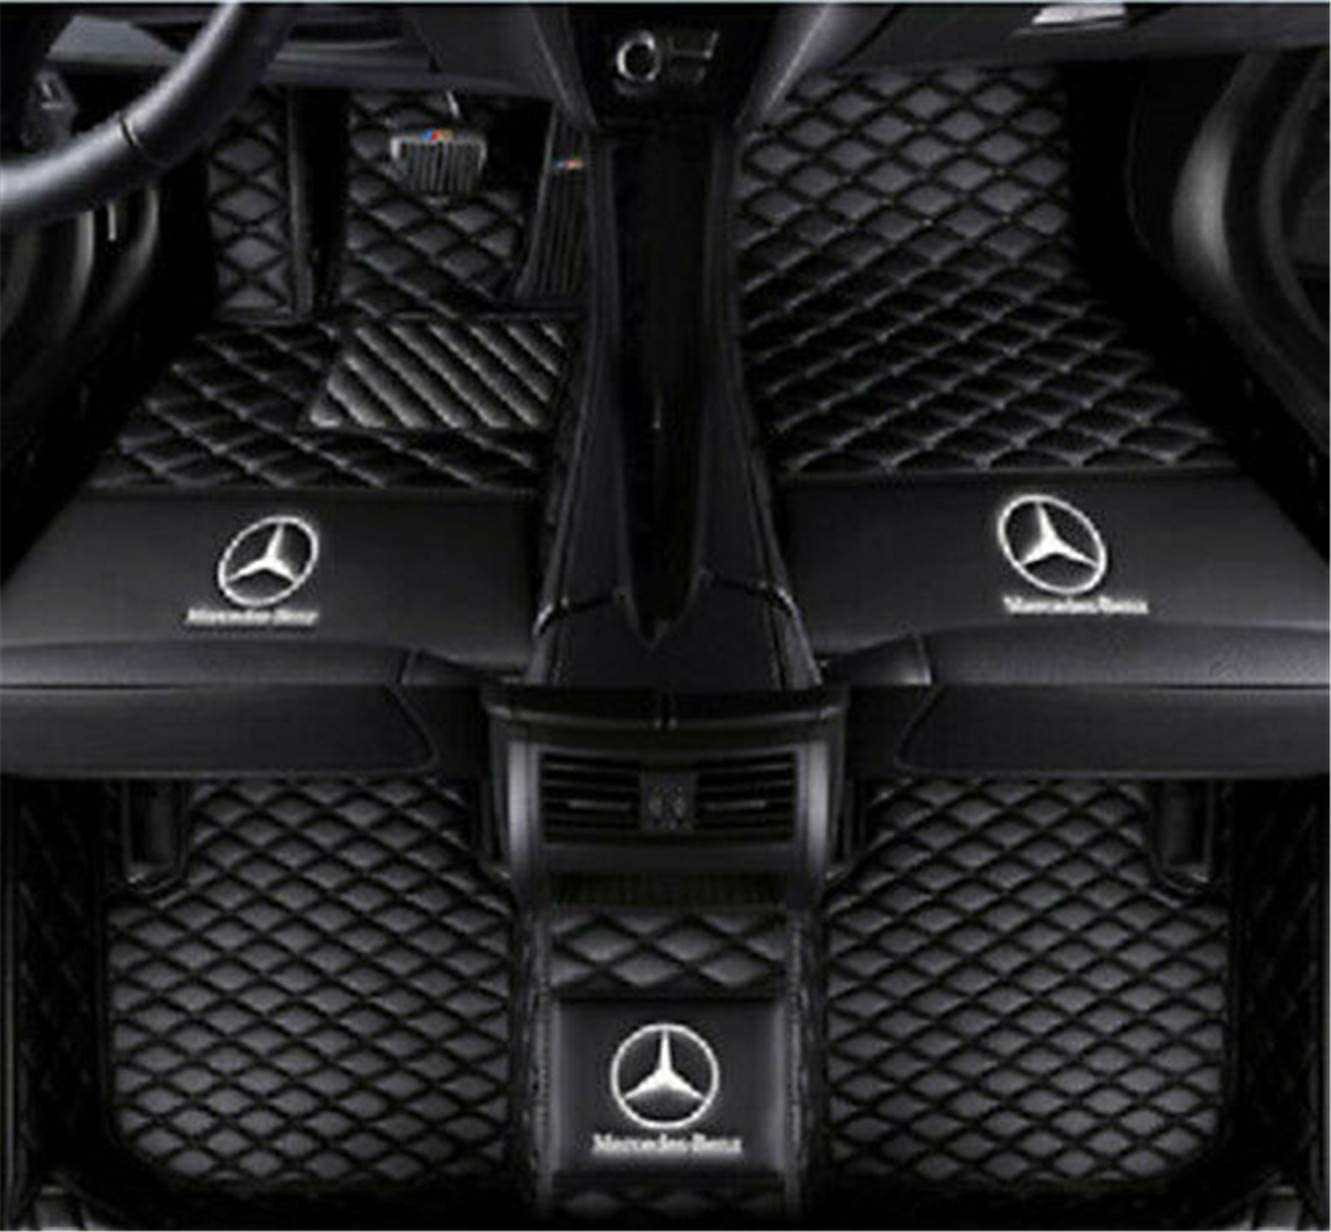 Fmingquhap Custom Fit XPE-Leather All Full Surrounded Waterproof Car Floor Mats for Mercedes Benz M CLA CLS R CLK SLC SL SLK Class with Logo. (Black, Benz M Class 2012-2016)